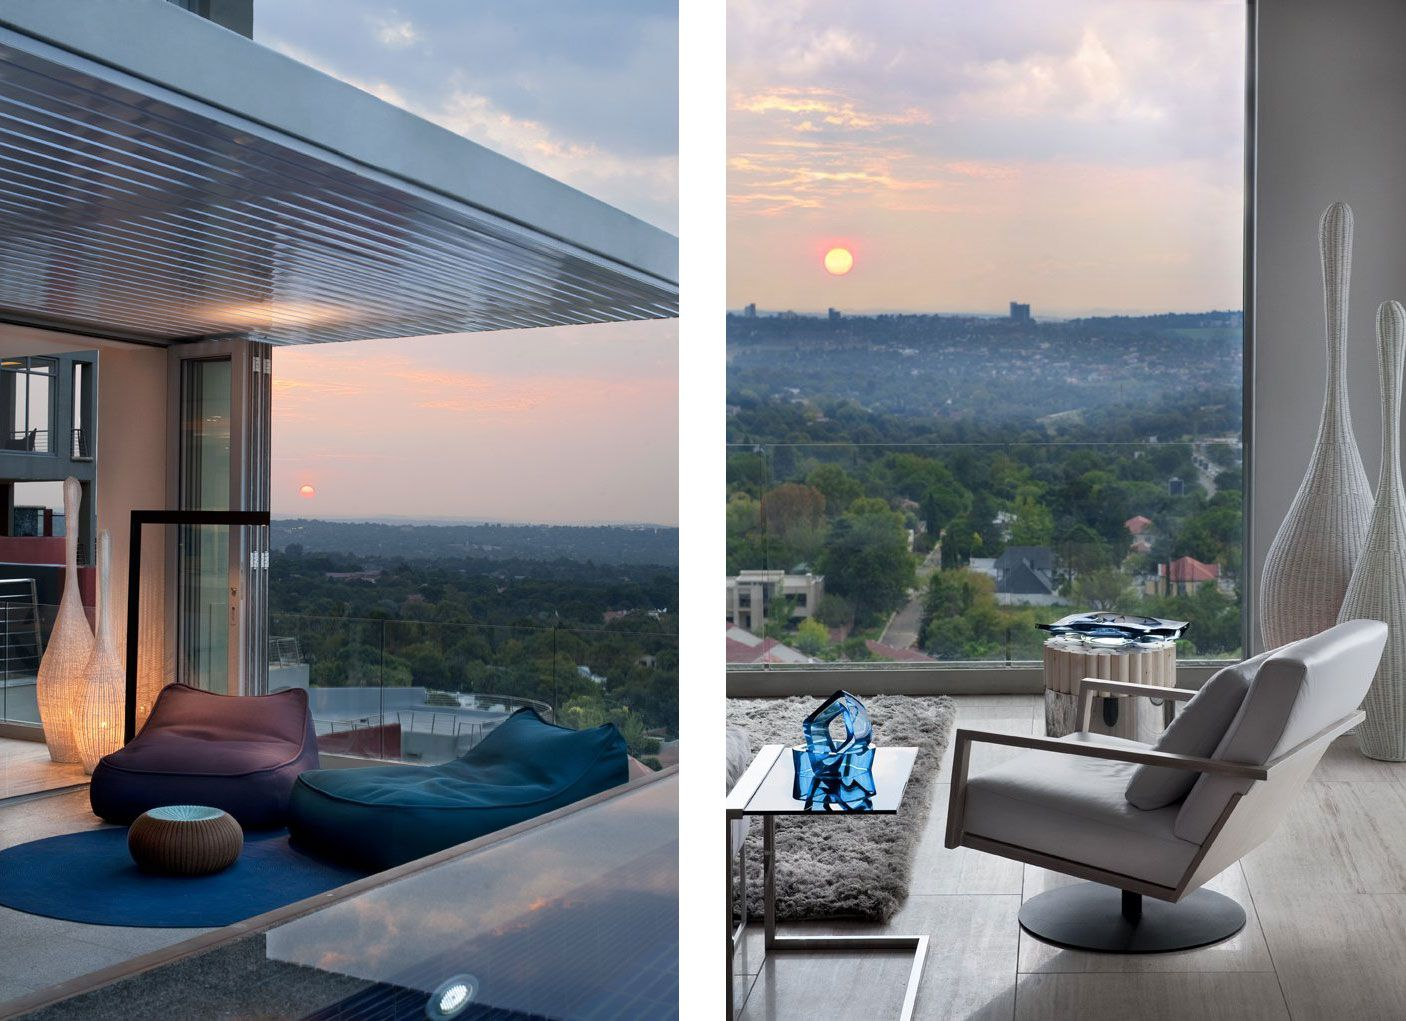 Luxury sandhurst towers penthouse in johannesburg 05 1